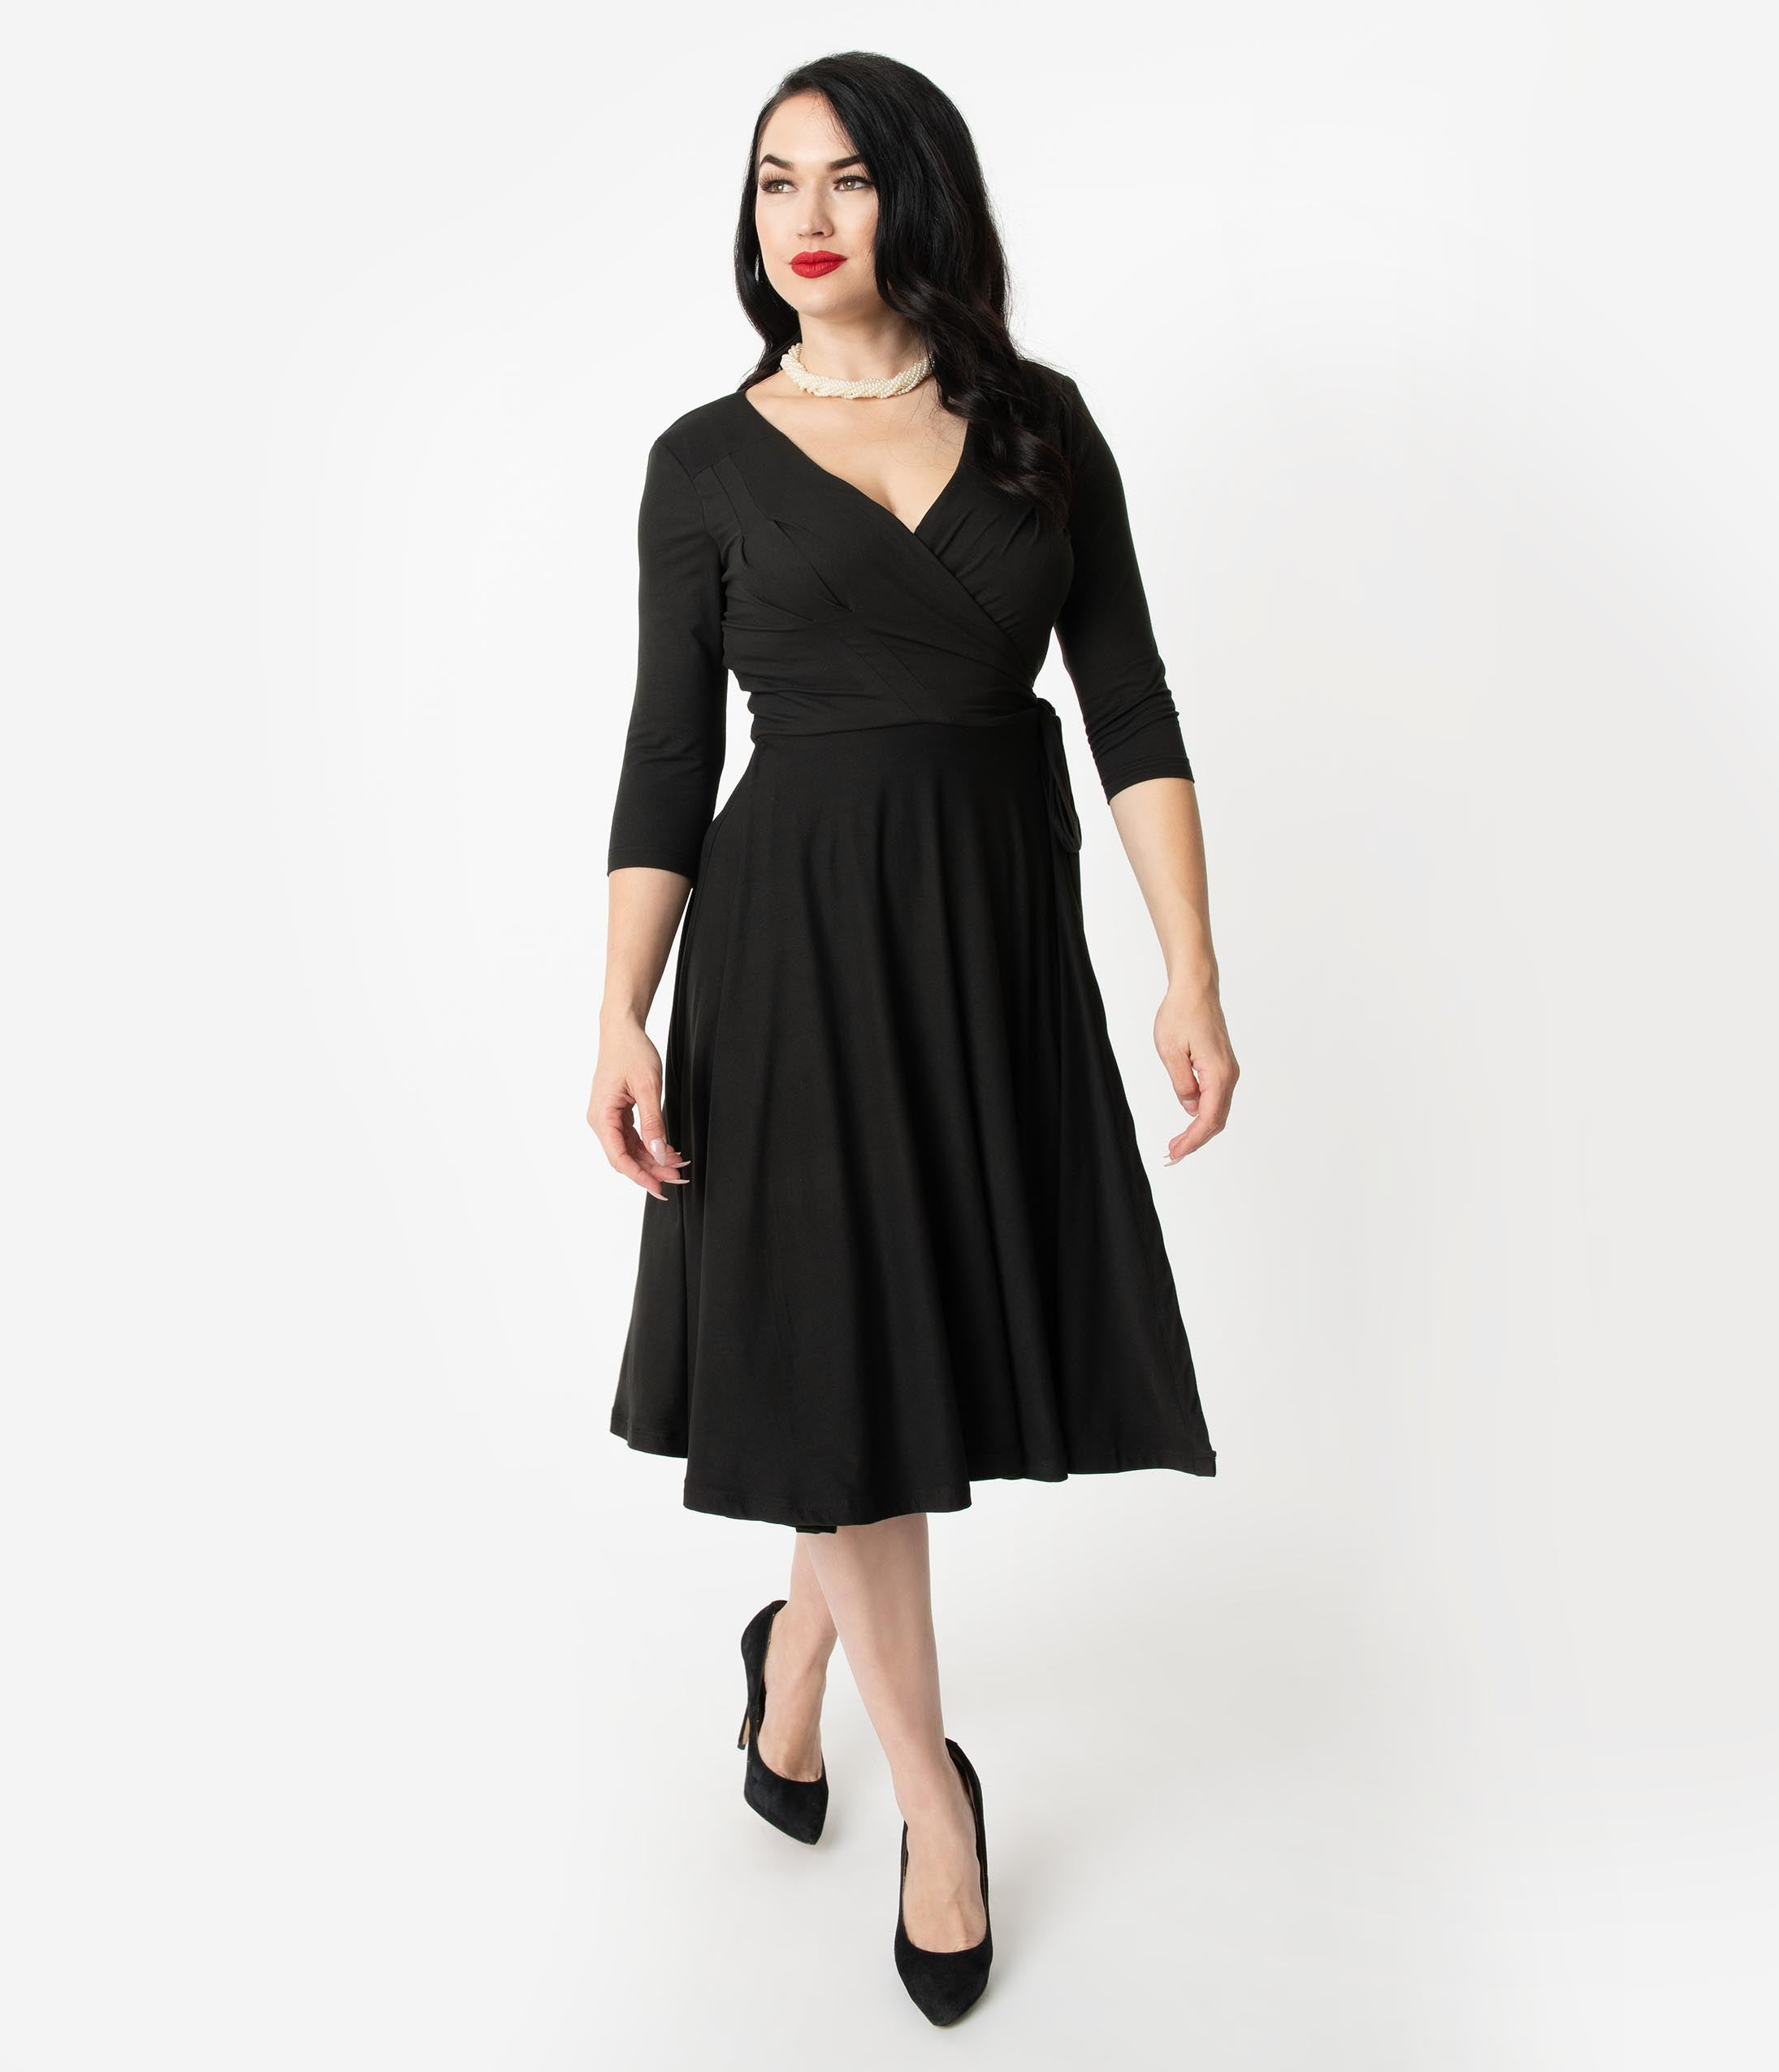 1940s Cocktail Dresses, Party Dresses Unique Vintage 1940S Style Black Sleeved Kelsie Wrap Dress $78.00 AT vintagedancer.com